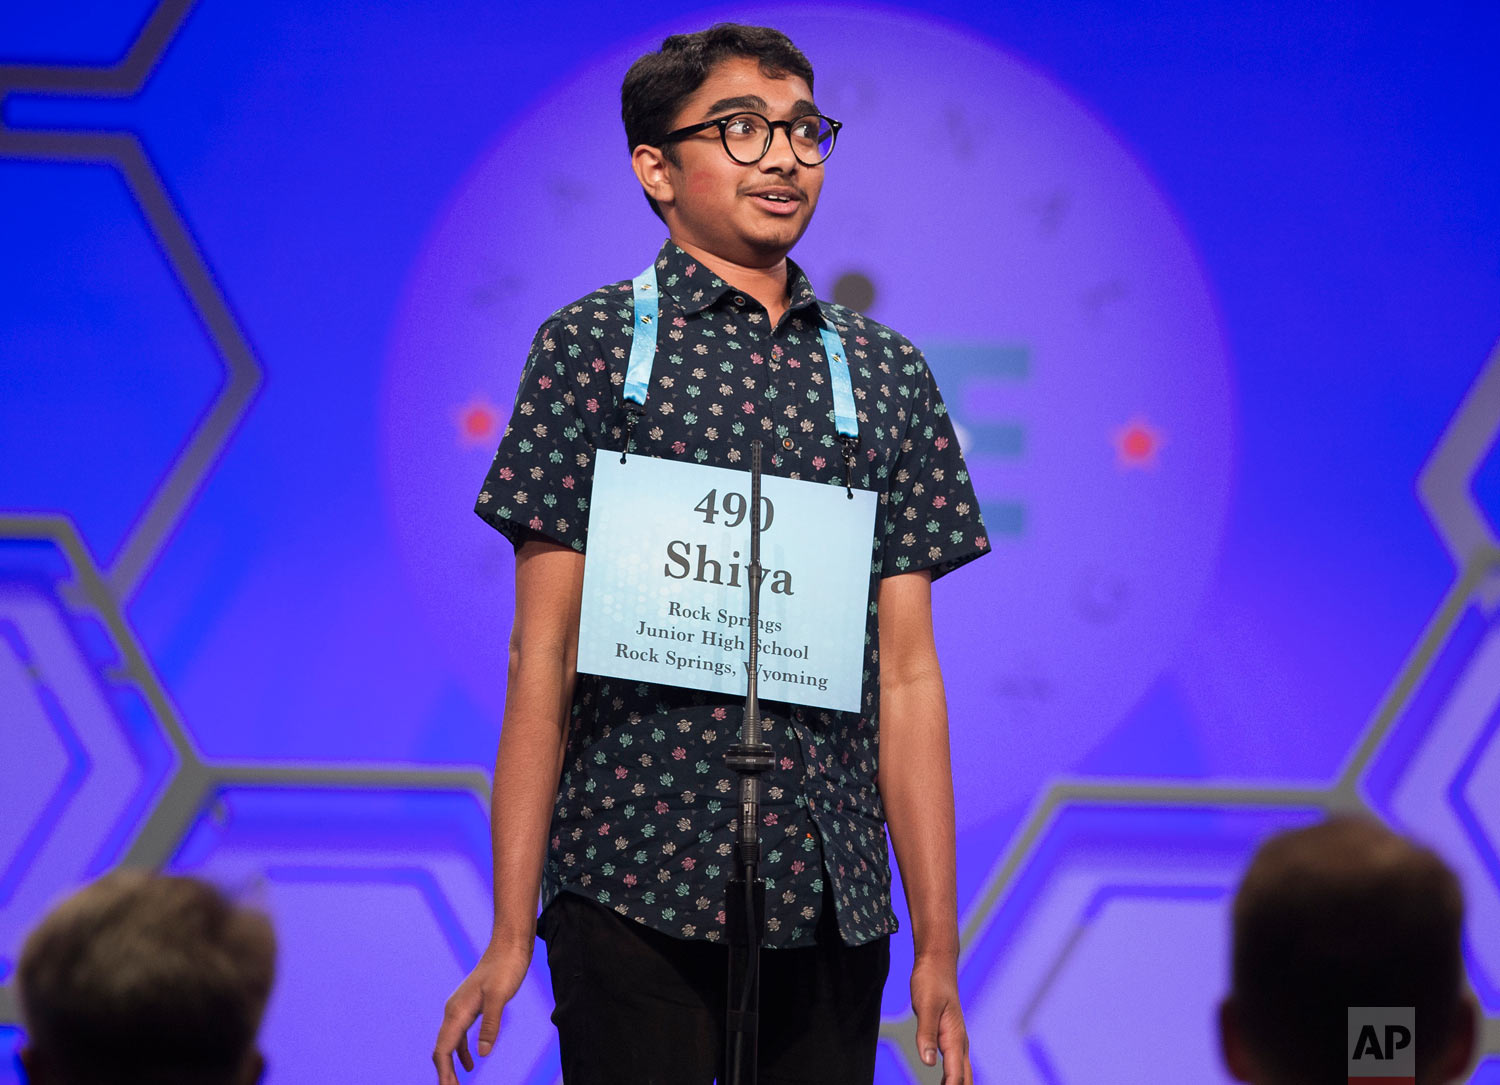 """Shiva Yeshlur, 13, from Rock Springs, Wyo., jumps into the air after correctly spelling """"diastrophism"""" during the third round of the Scripps National Spelling Bee in Oxon Hill, Md., Wednesday, May 30, 2018. (AP Photo/Cliff Owen)"""